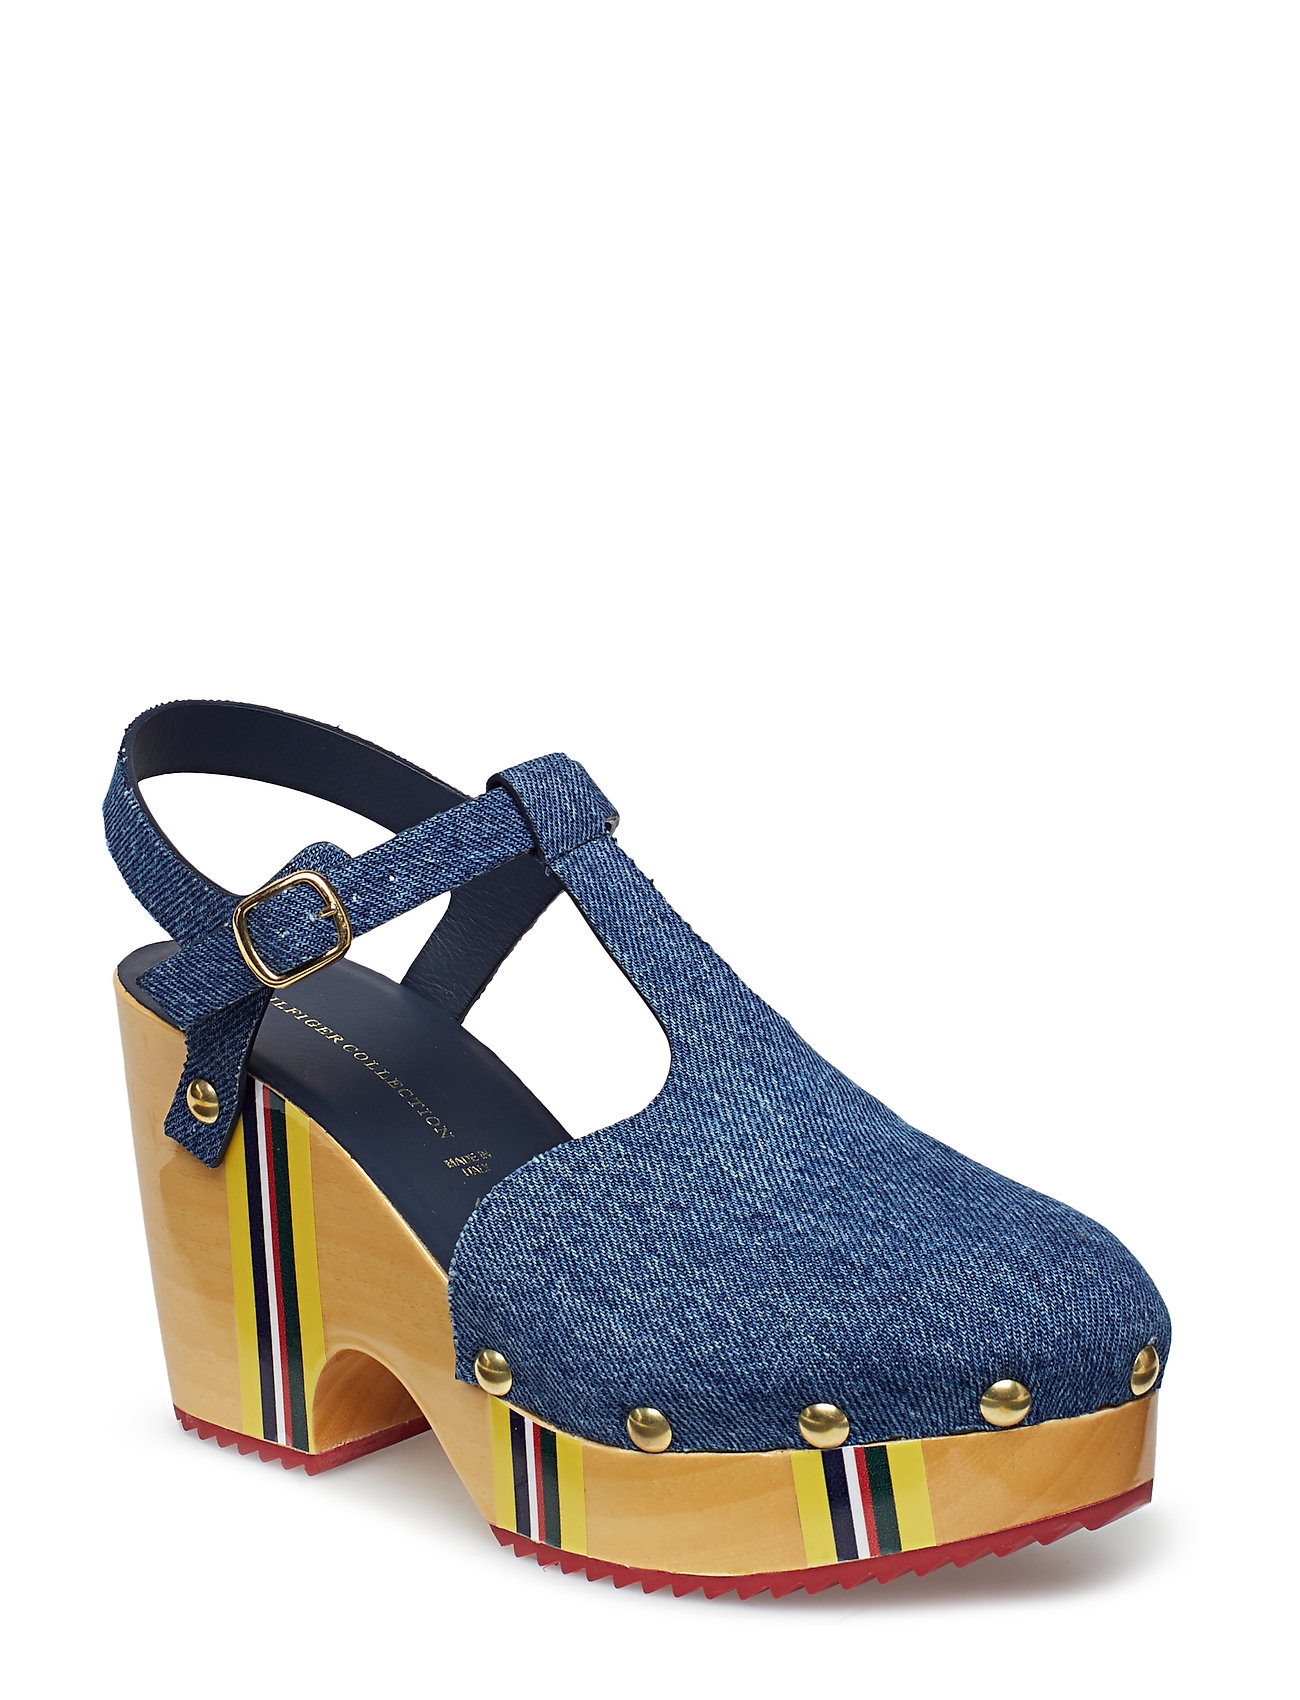 Hilfiger Collection THC CLOG SANDAL - DENIM